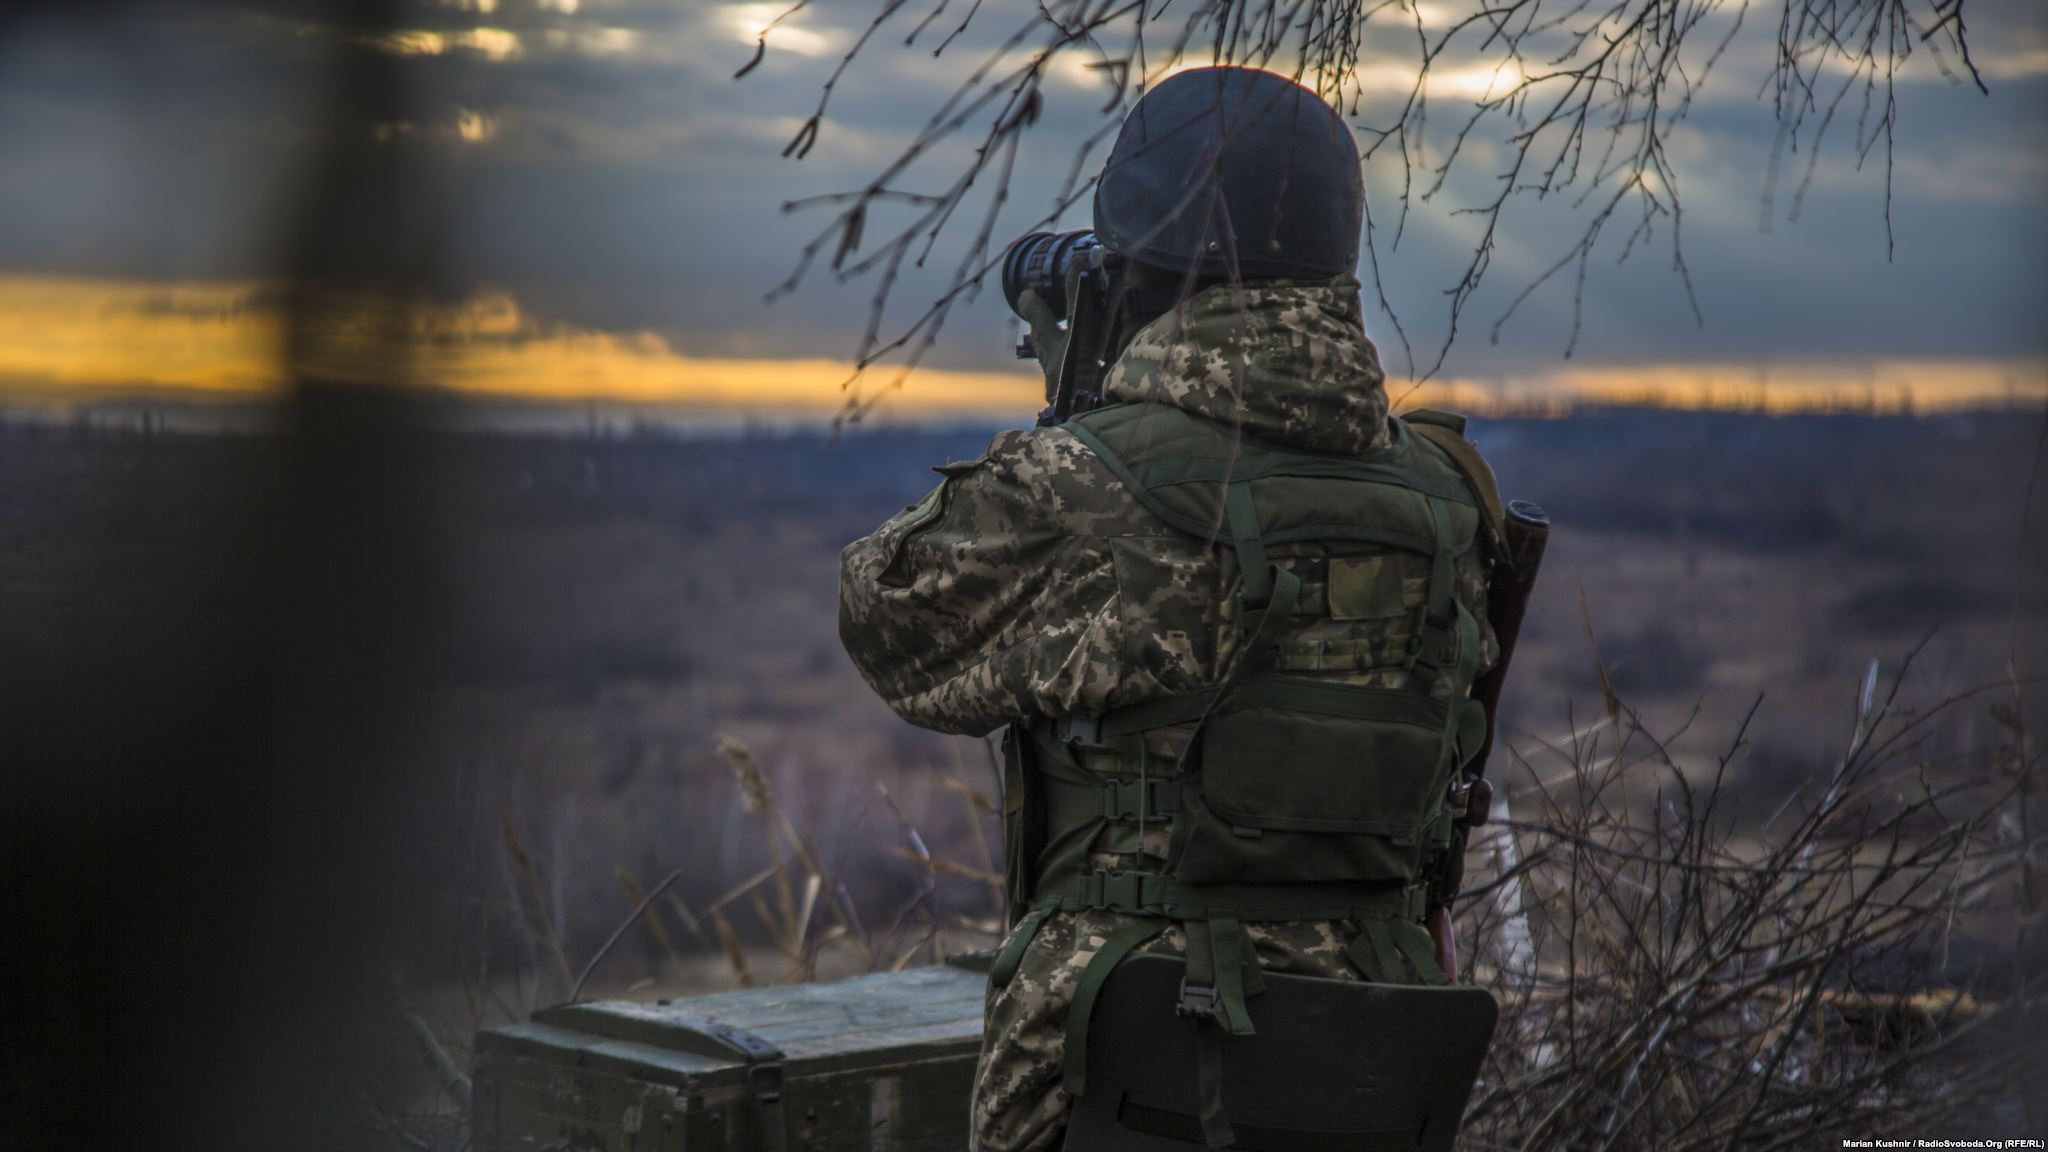 One of the Olexanders observed with binoculars the territory in front of the Donbass slagheap (photo by photographer Andriy Dubchak)